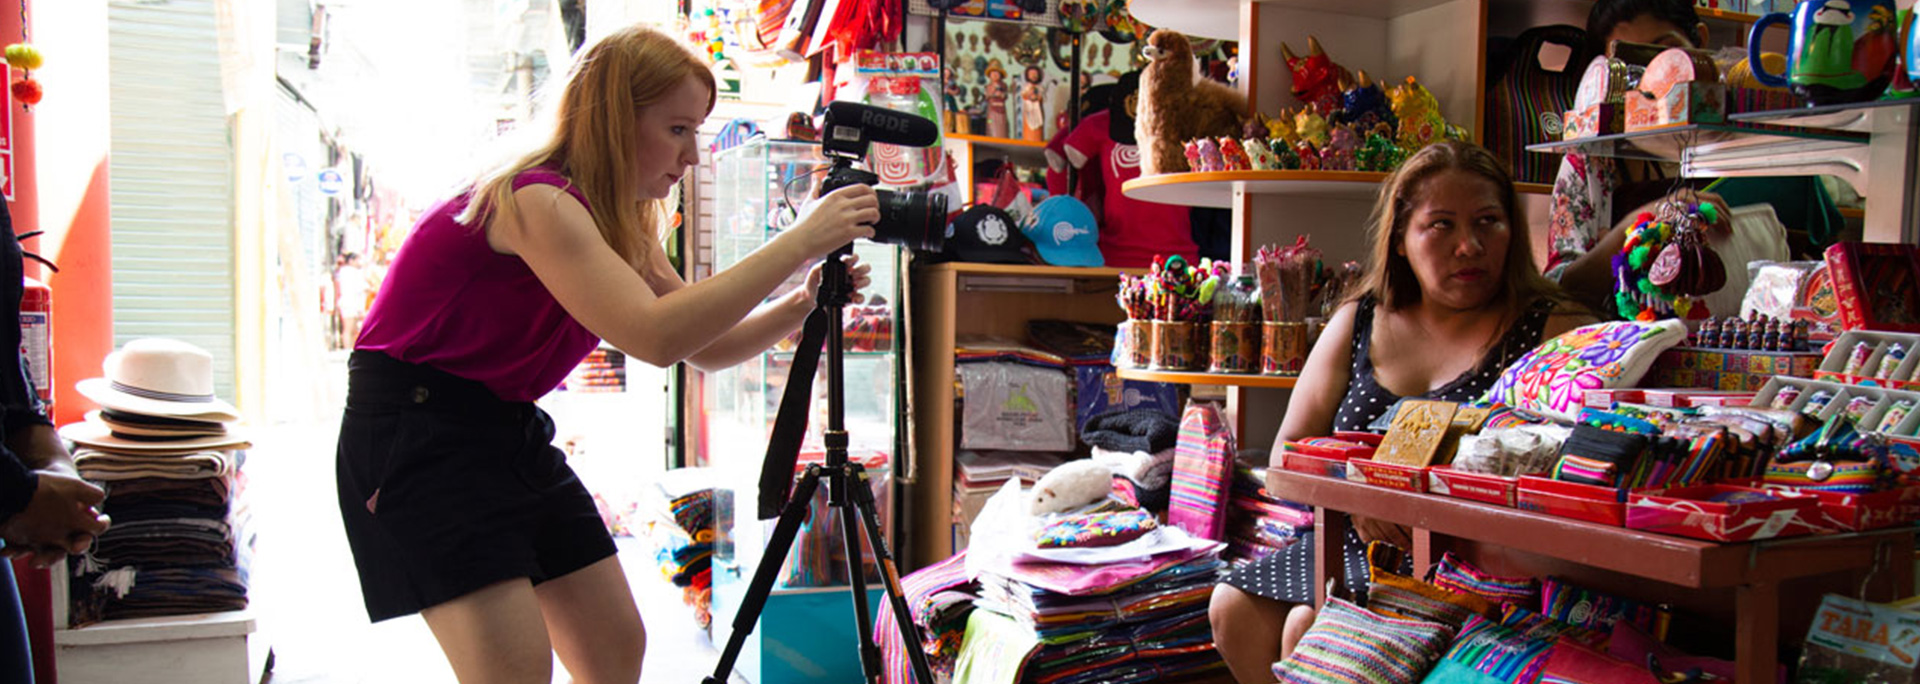 A student films at a local store.